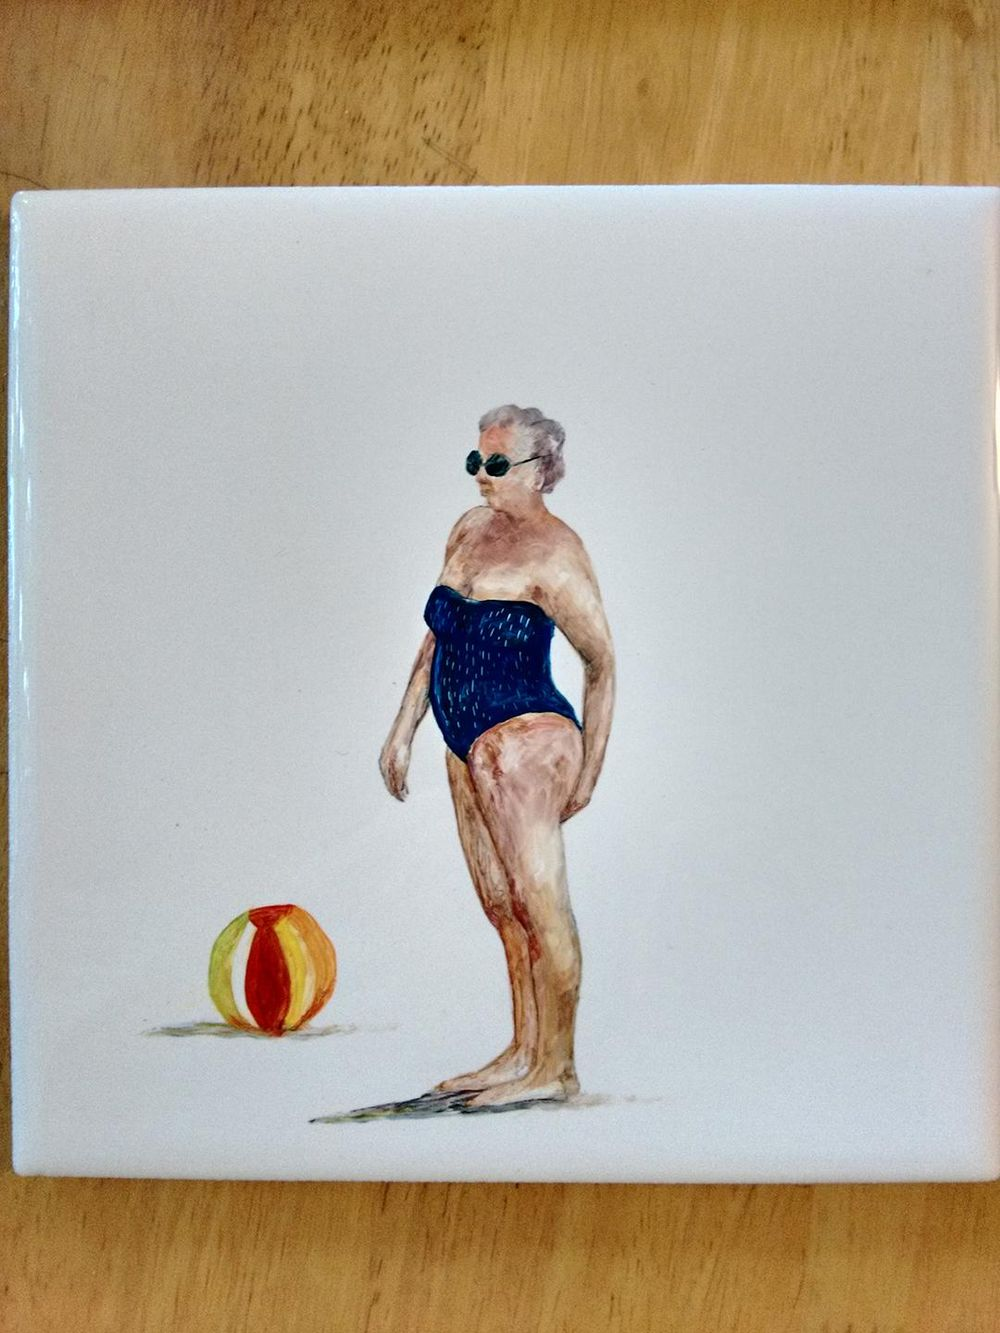 Lady with a beach ball - image 2 - student project